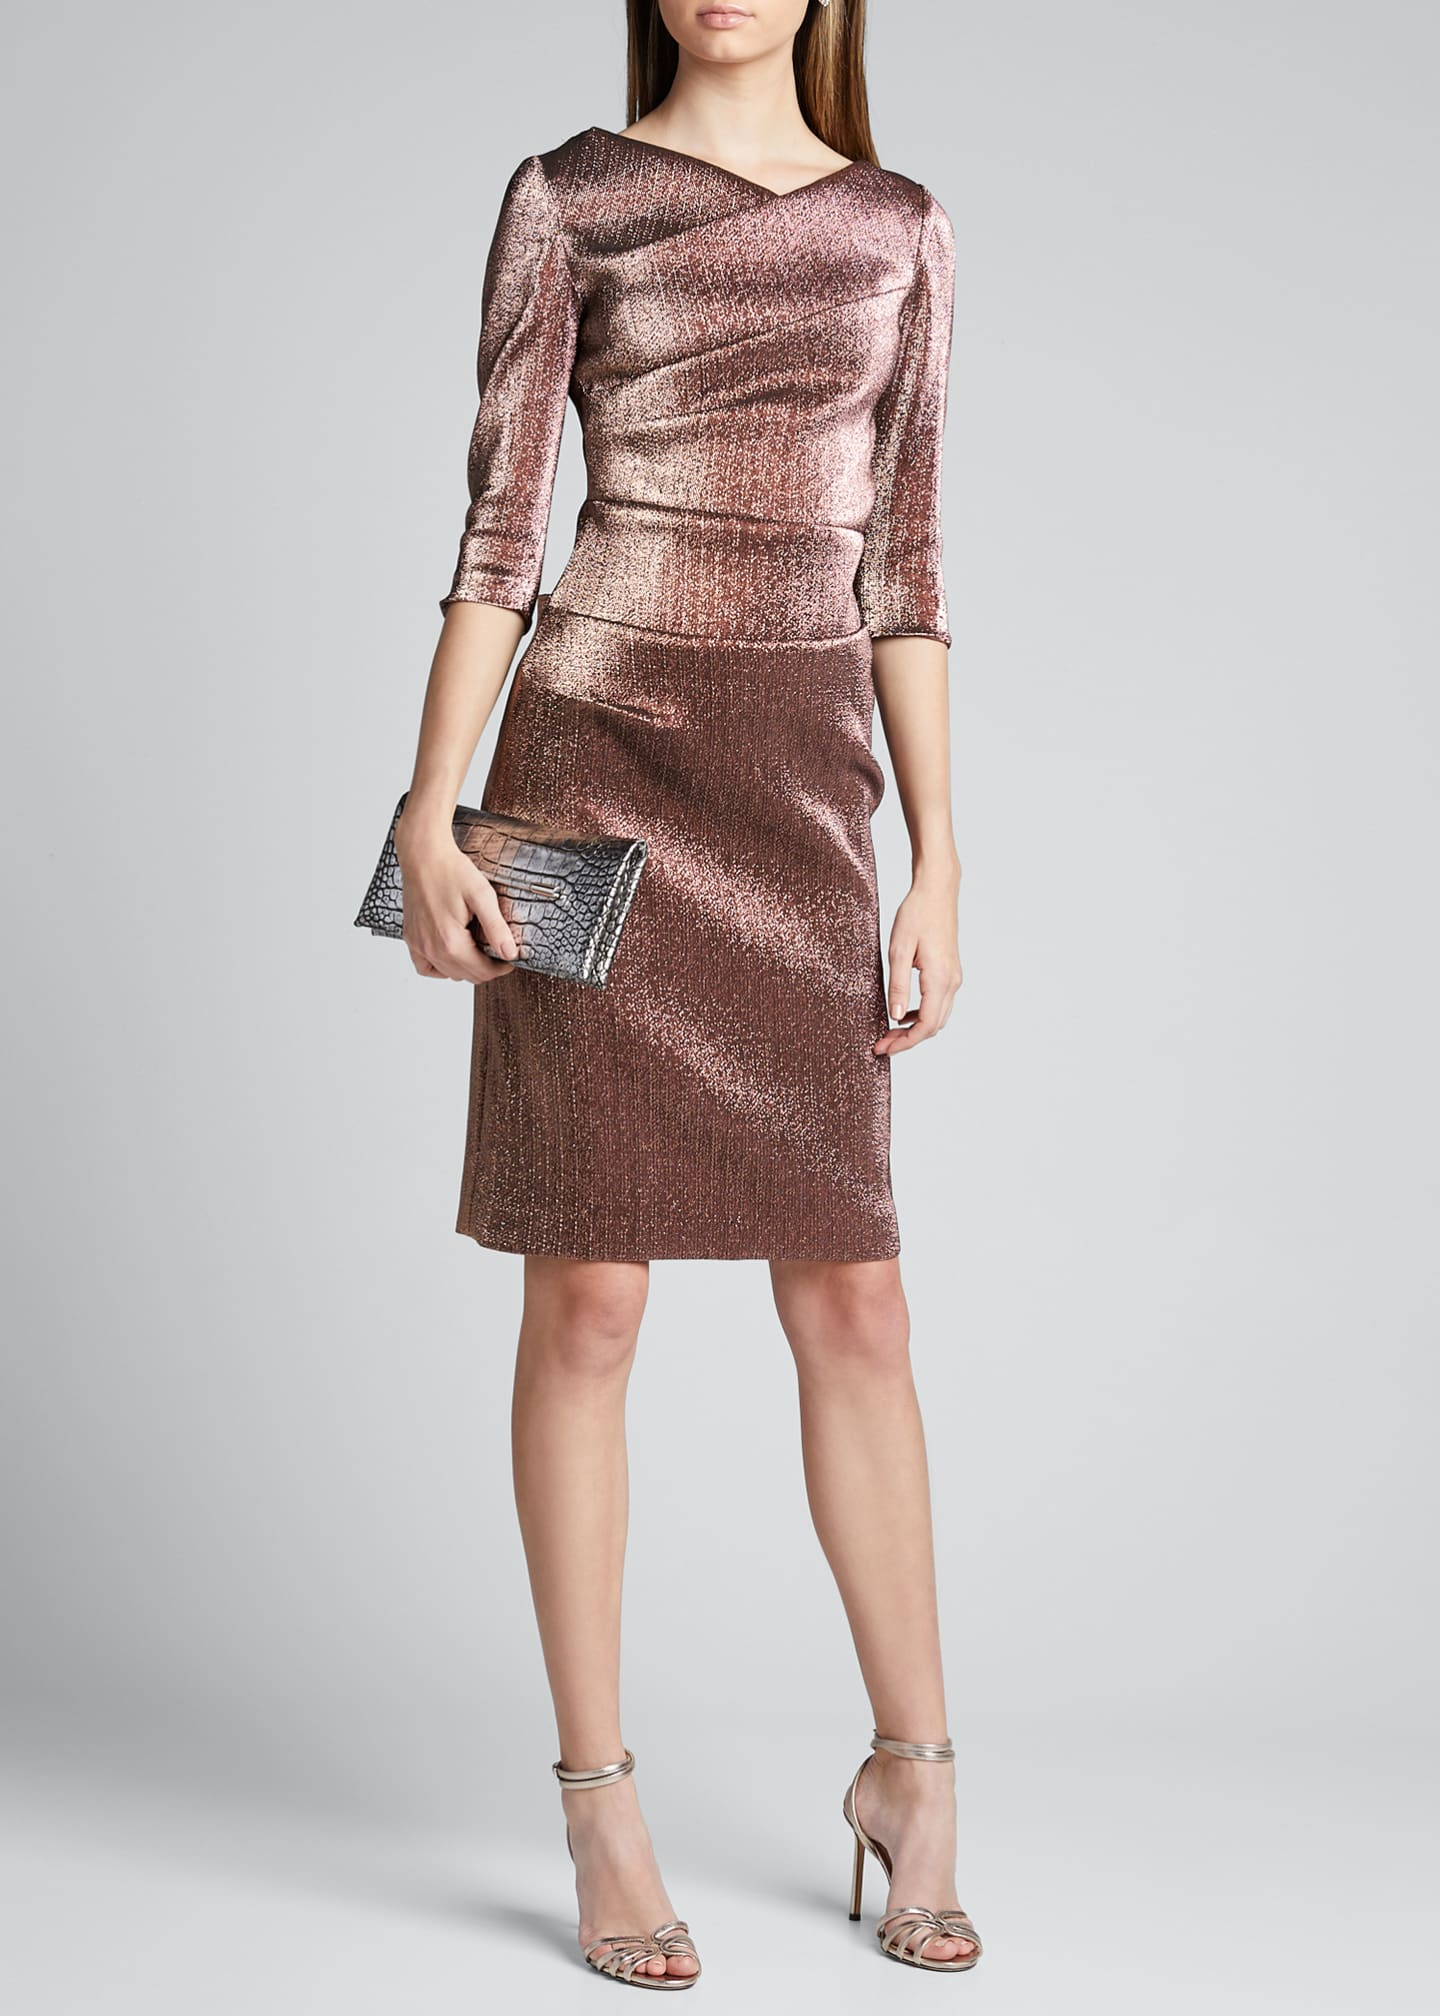 Rickie Freeman for Teri Jon Metallic Elbow-Sleeve Asymmetric